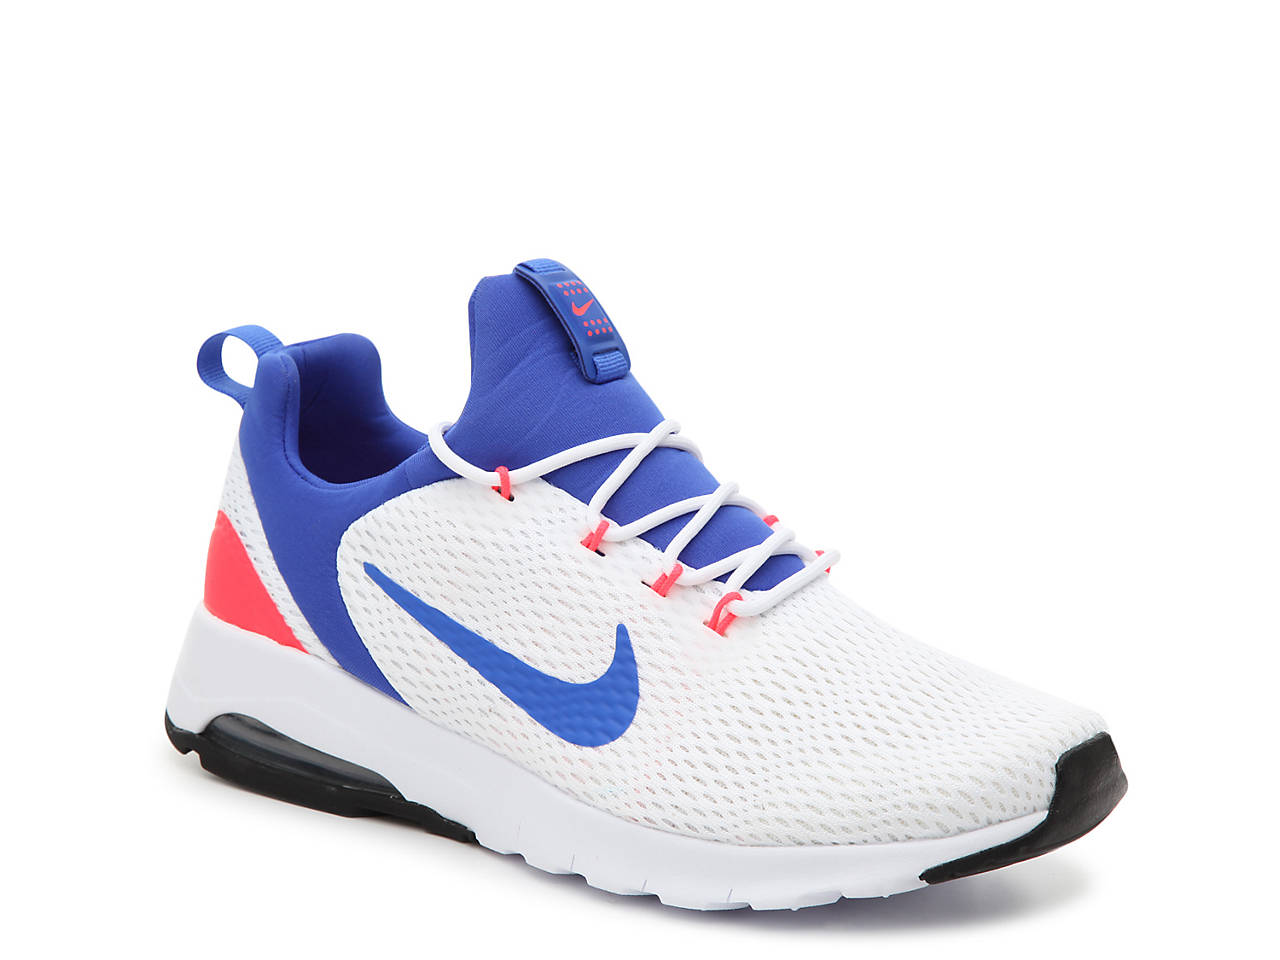 4872fb013c Nike Air Max Motion Racer Sneaker - Women's Women's Shoes | DSW